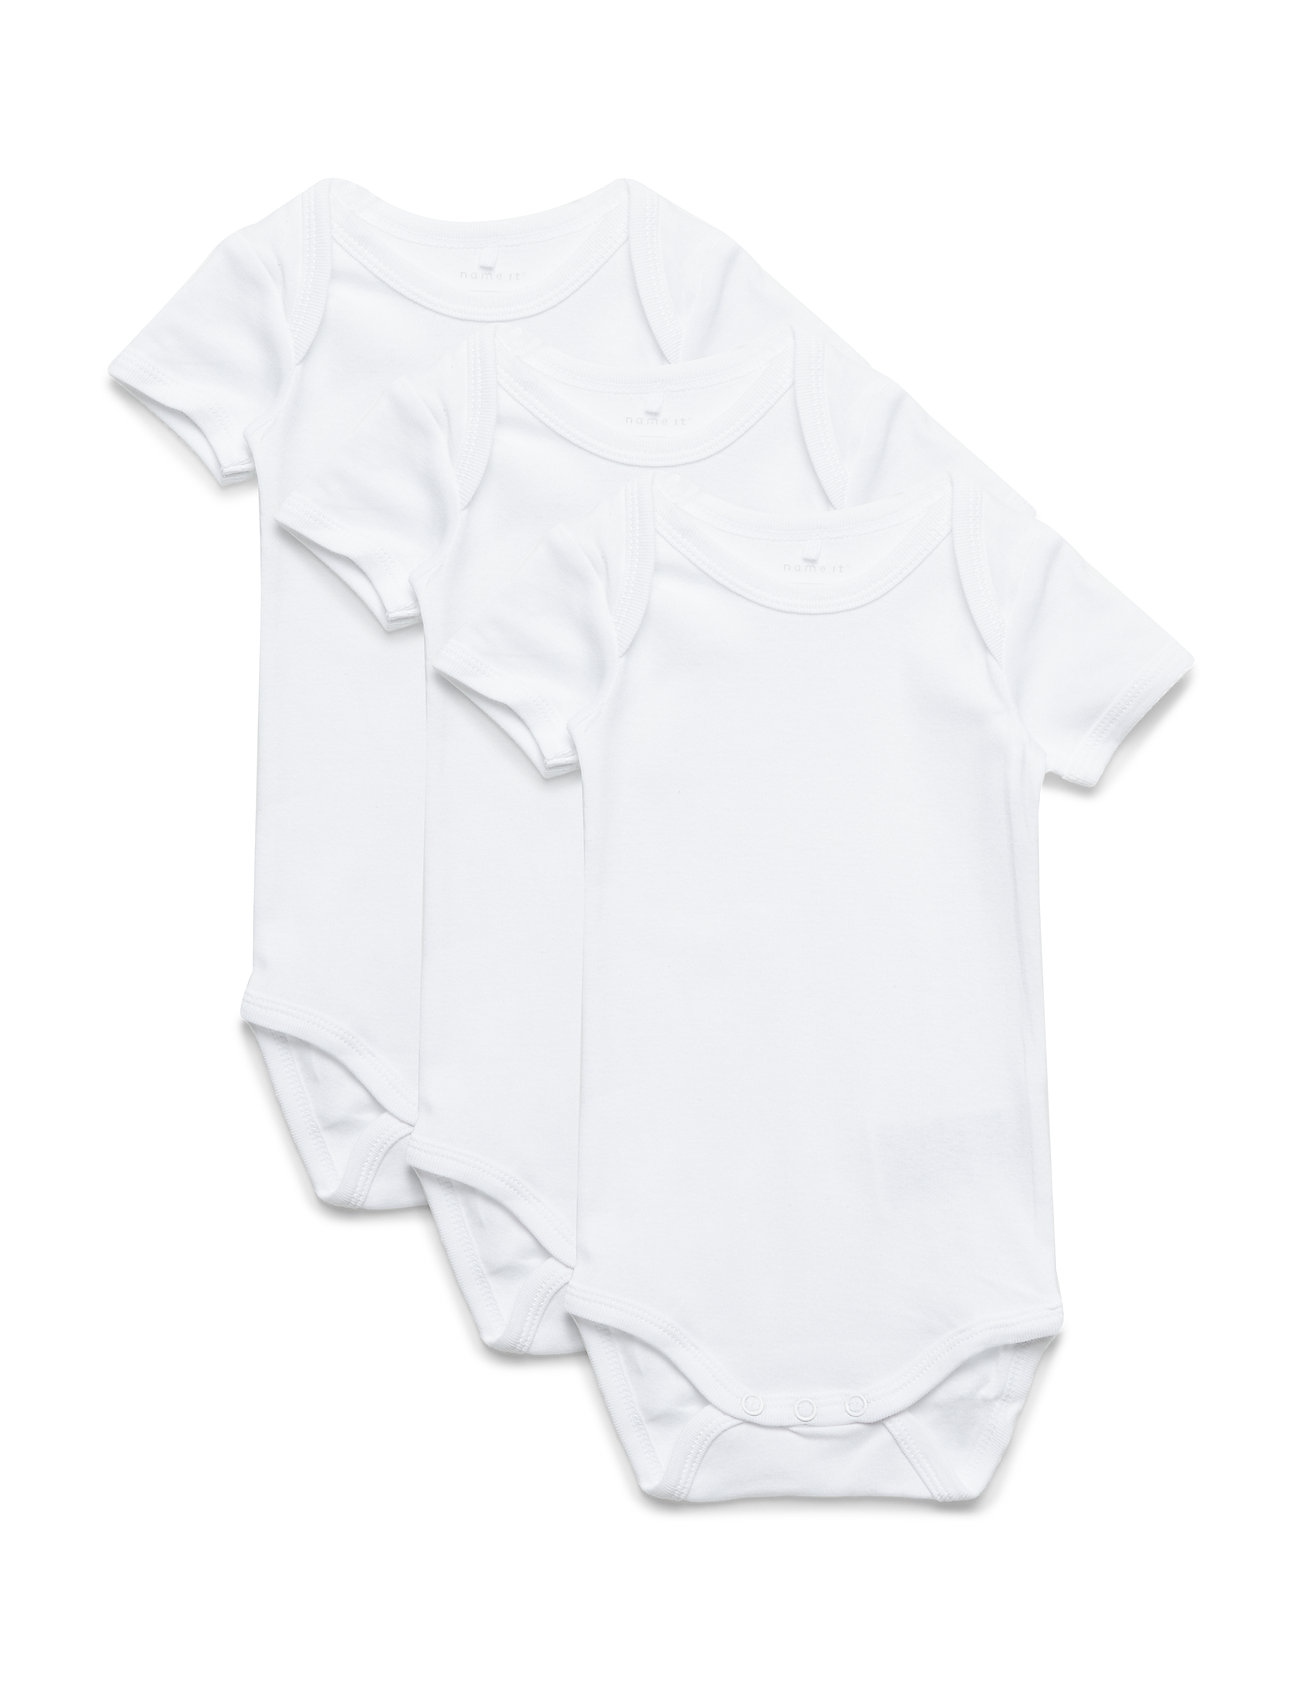 name it NBNBODY 3P SS SOLID WHITE NOOS - BRIGHT WHITE